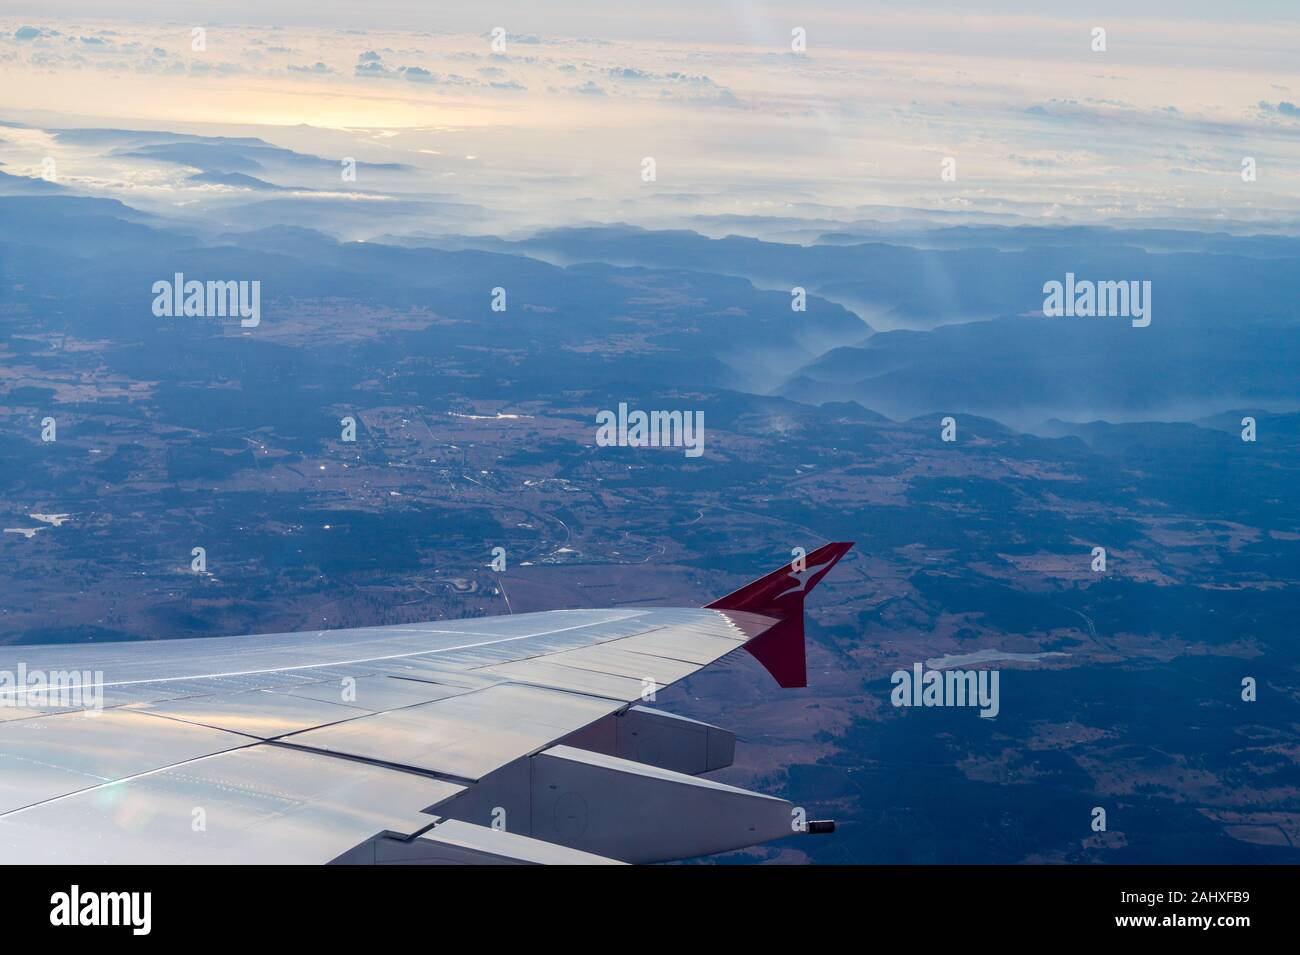 smoke-from-bush-fires-seen-from-a-qantas-airbus-a380-airliner-approaching-sydney-airport-at-sunrise-australia-2AHXFB9.jpg